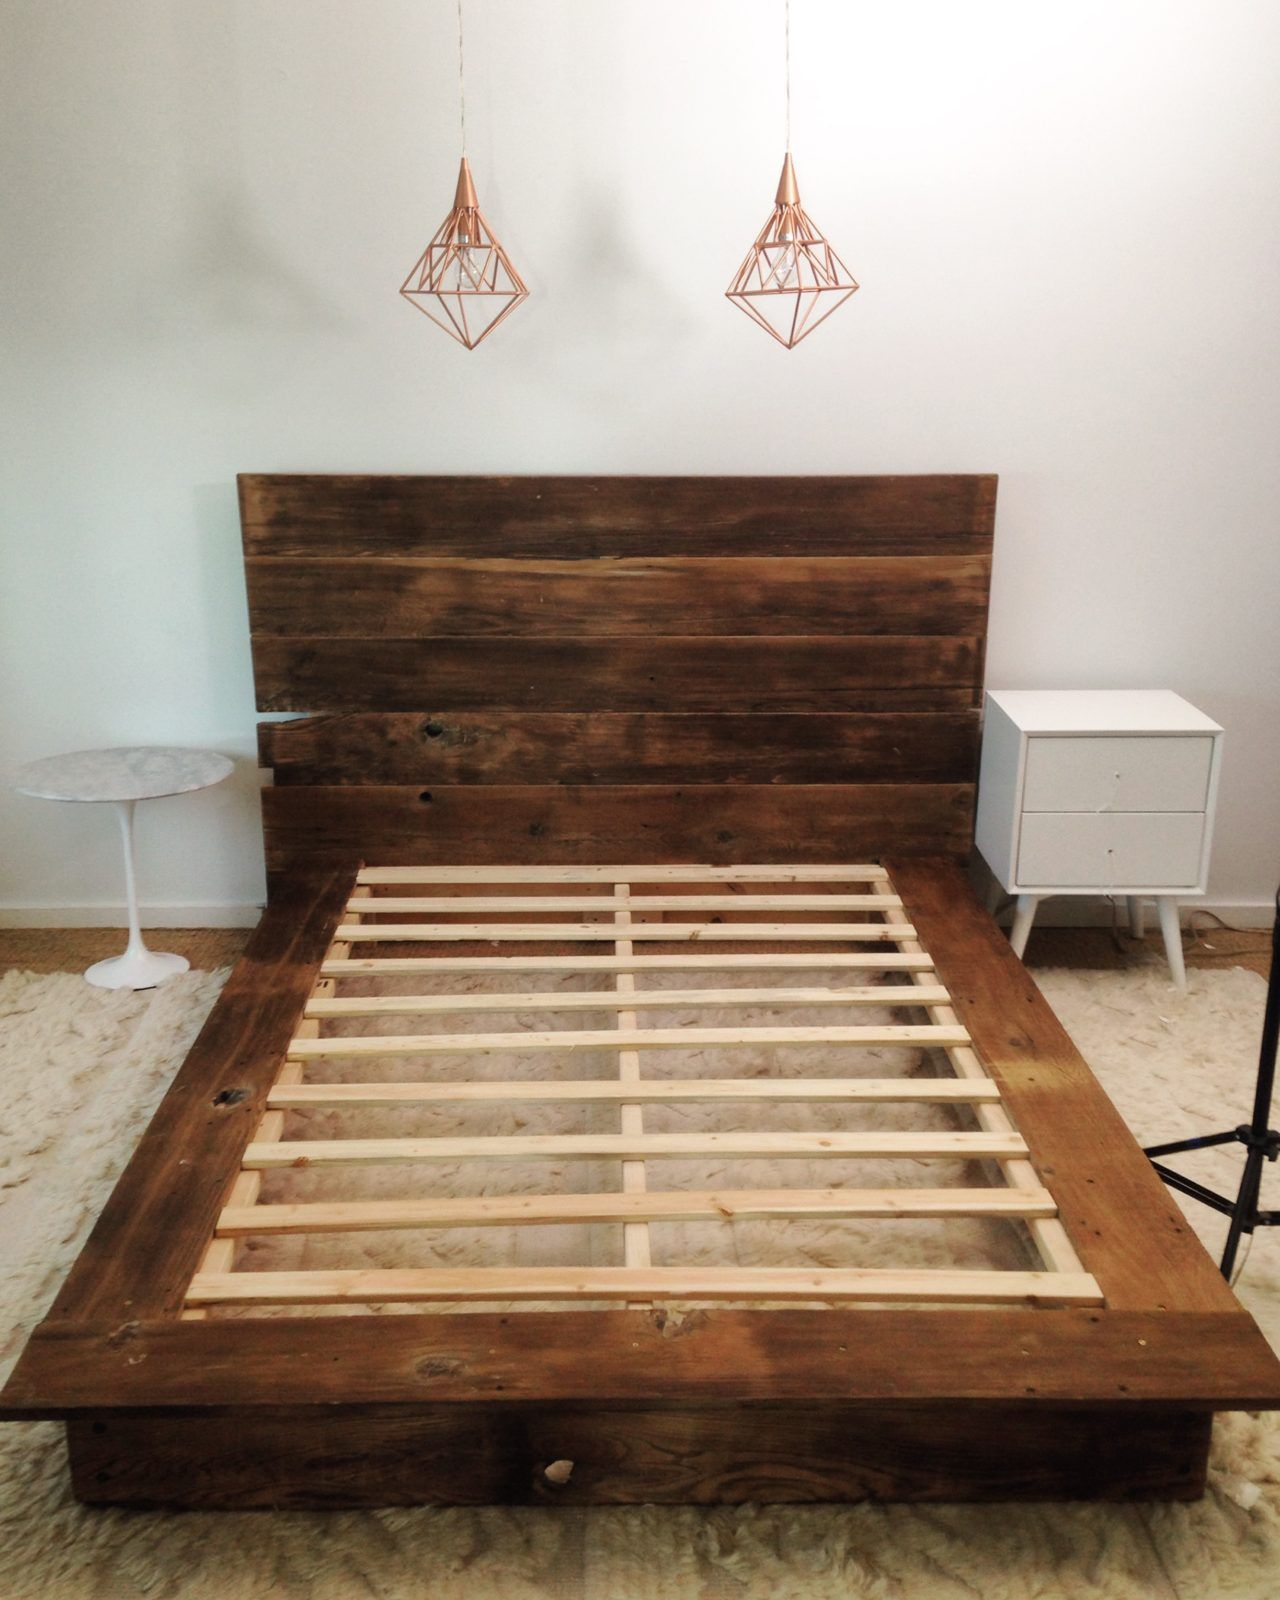 Cheap Wooden Bed Frames Diy Reclaimed Wood Platform Bed In 2019 Home Diy Bed Frame